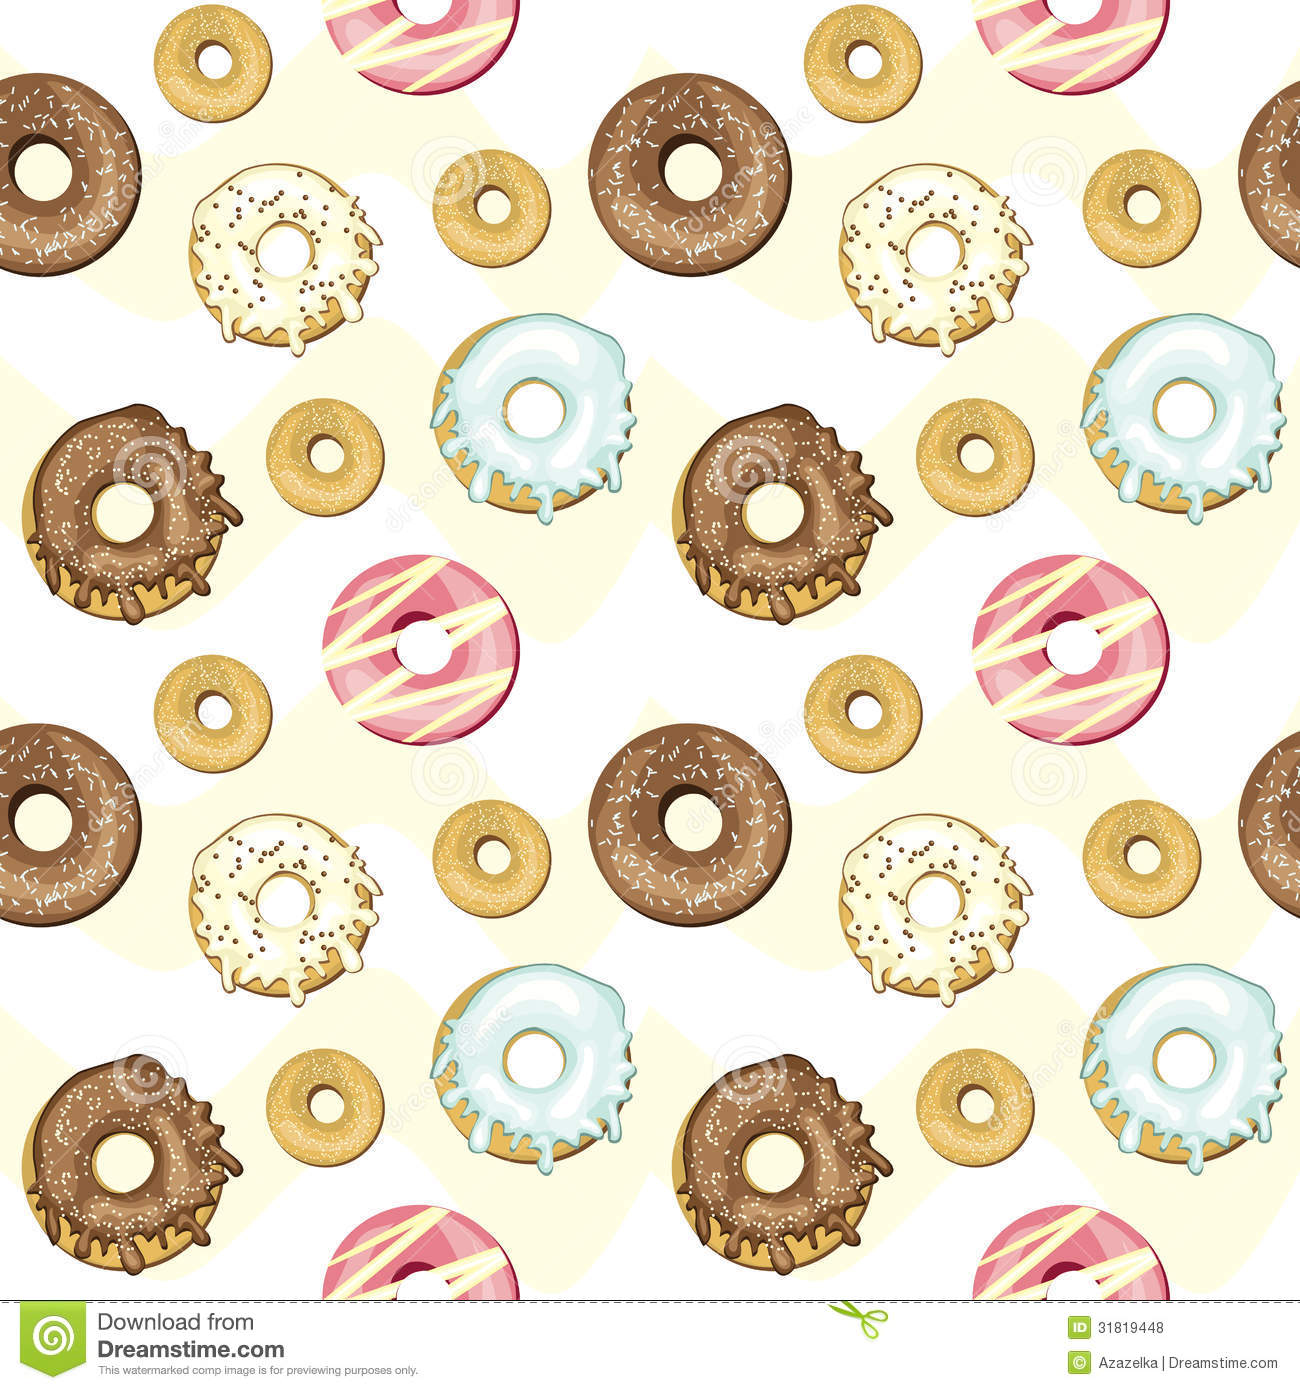 2716x1826 All Donuts Wallpapers